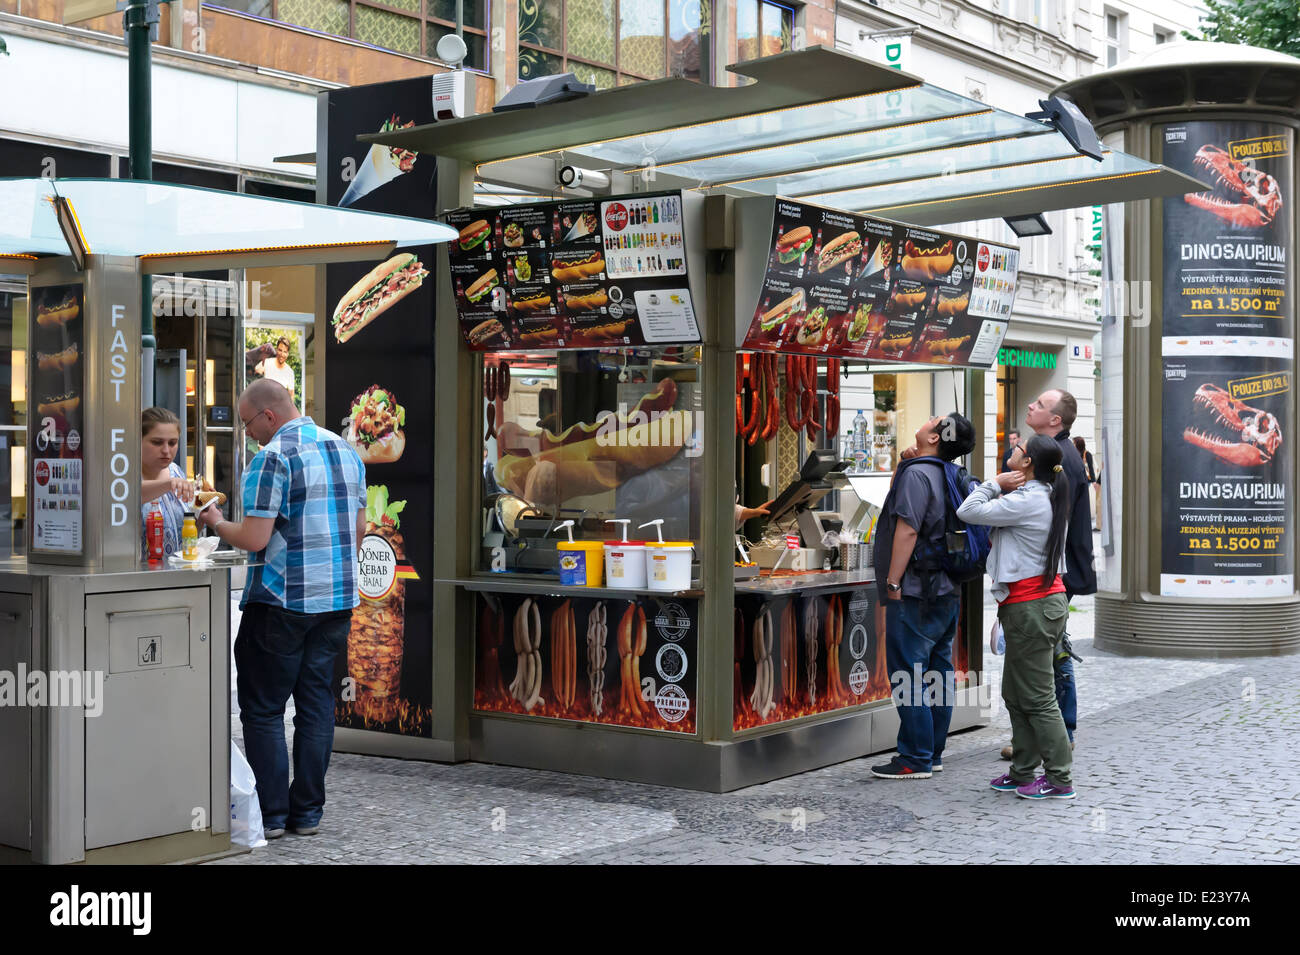 Tourists eating and choosing fast food from a Kiosk on Prague street